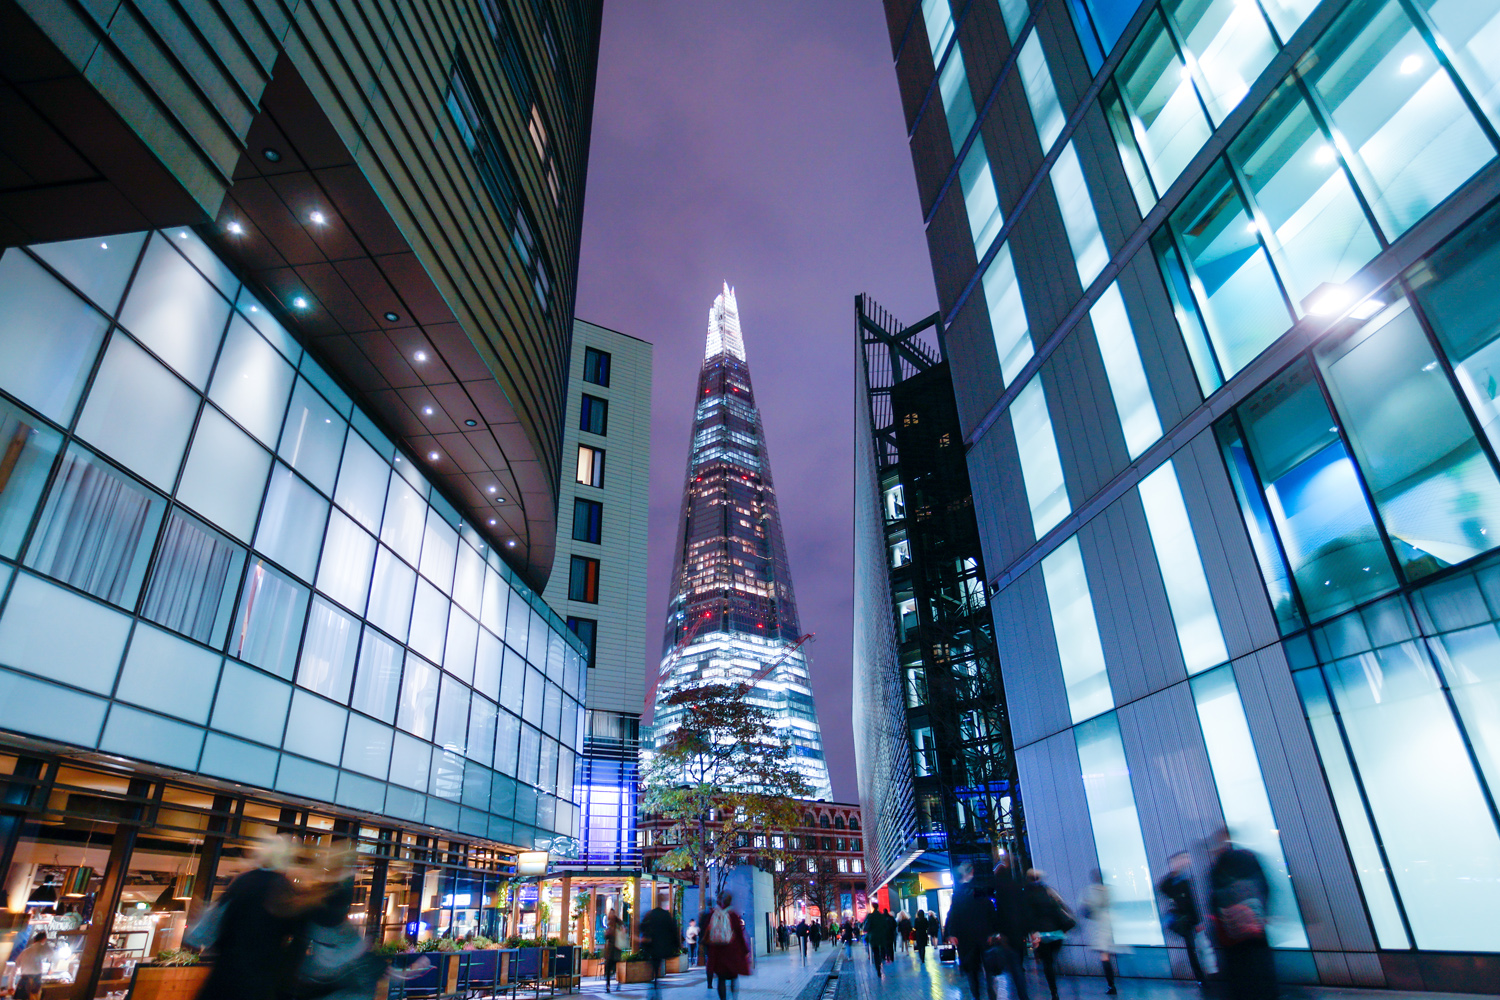 London Commercial Property Market Overview – September 2020